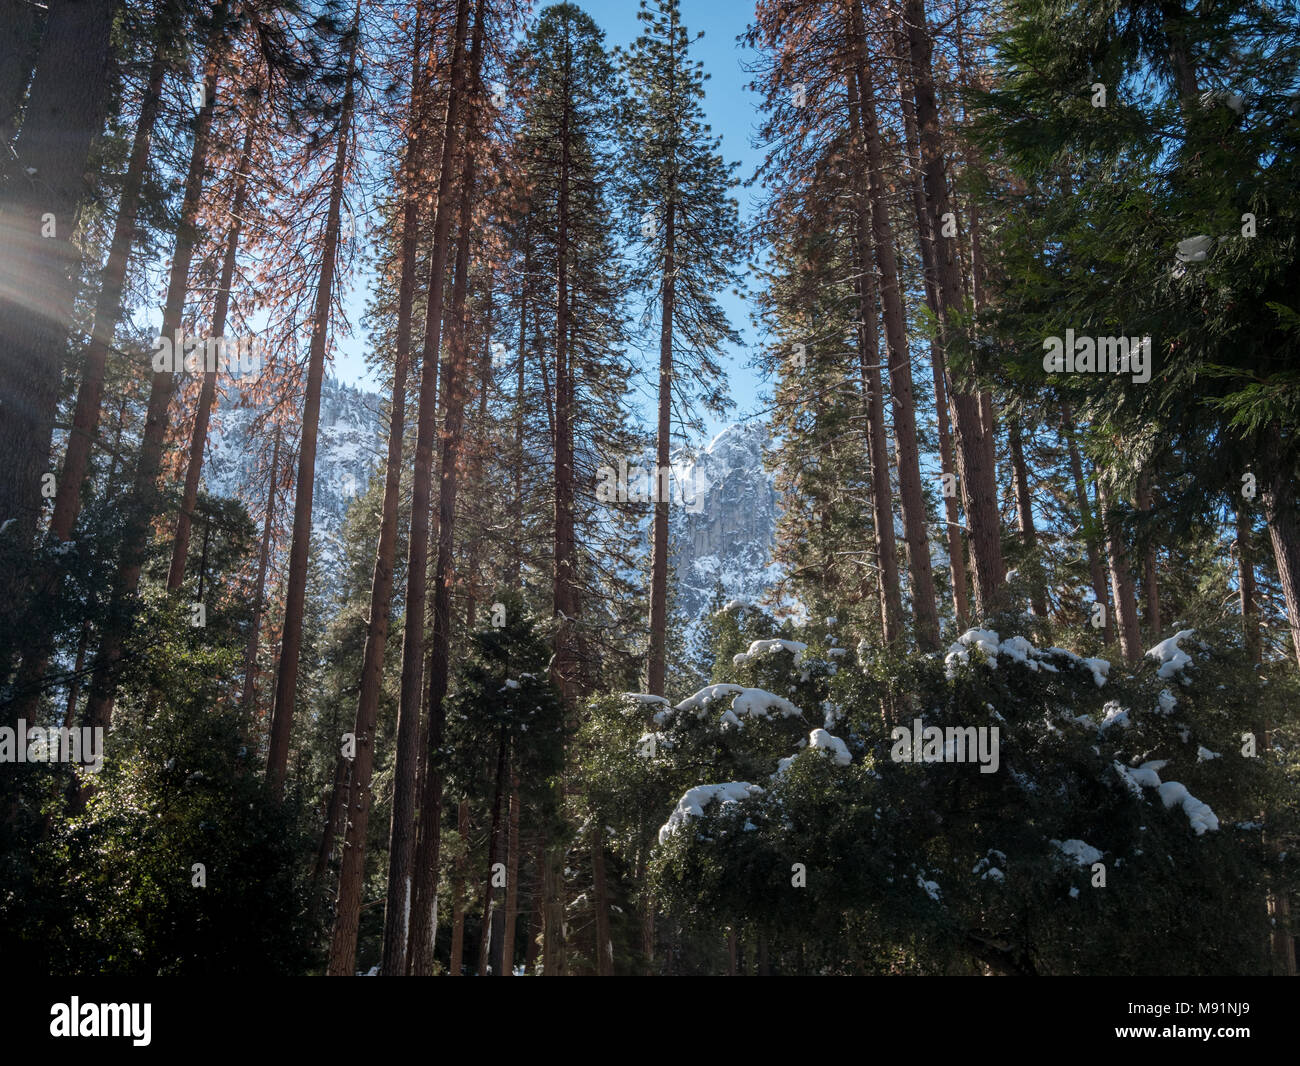 View of Tall Tress Covered in Snow with Large Mountains in the Background - Stock Image